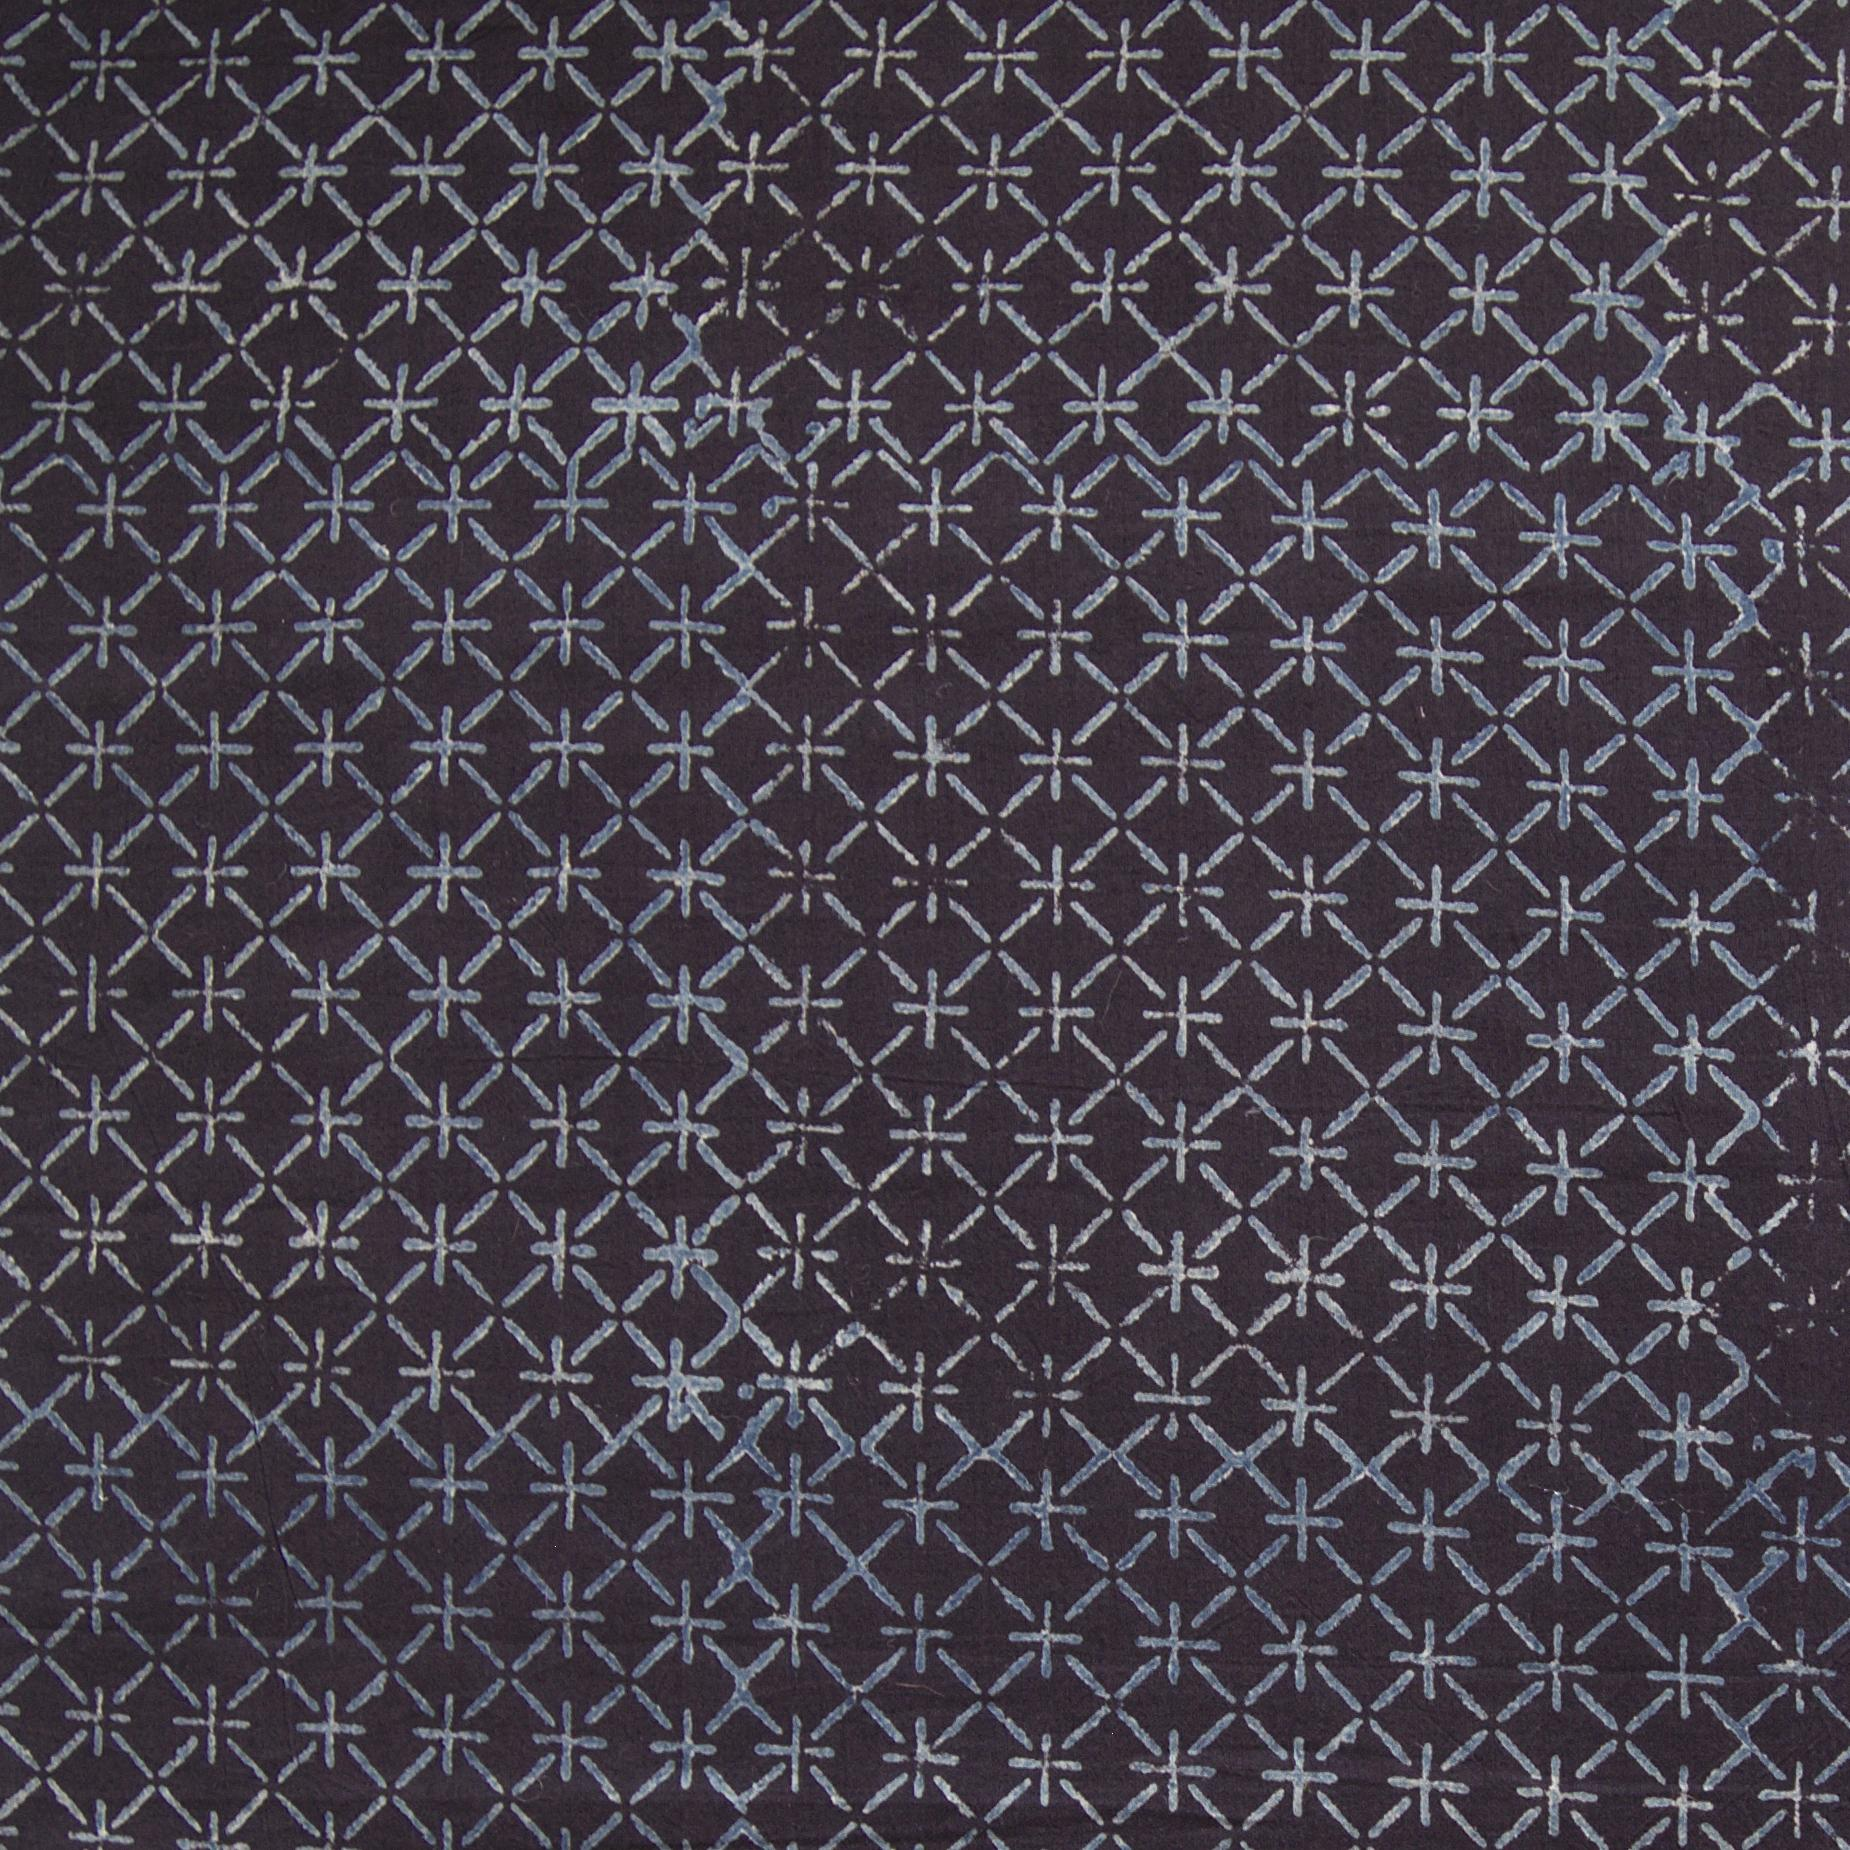 Block Printed Fabric, 100% Cotton, Ajrak Design: Black Base, Blue Sticks. Close Up